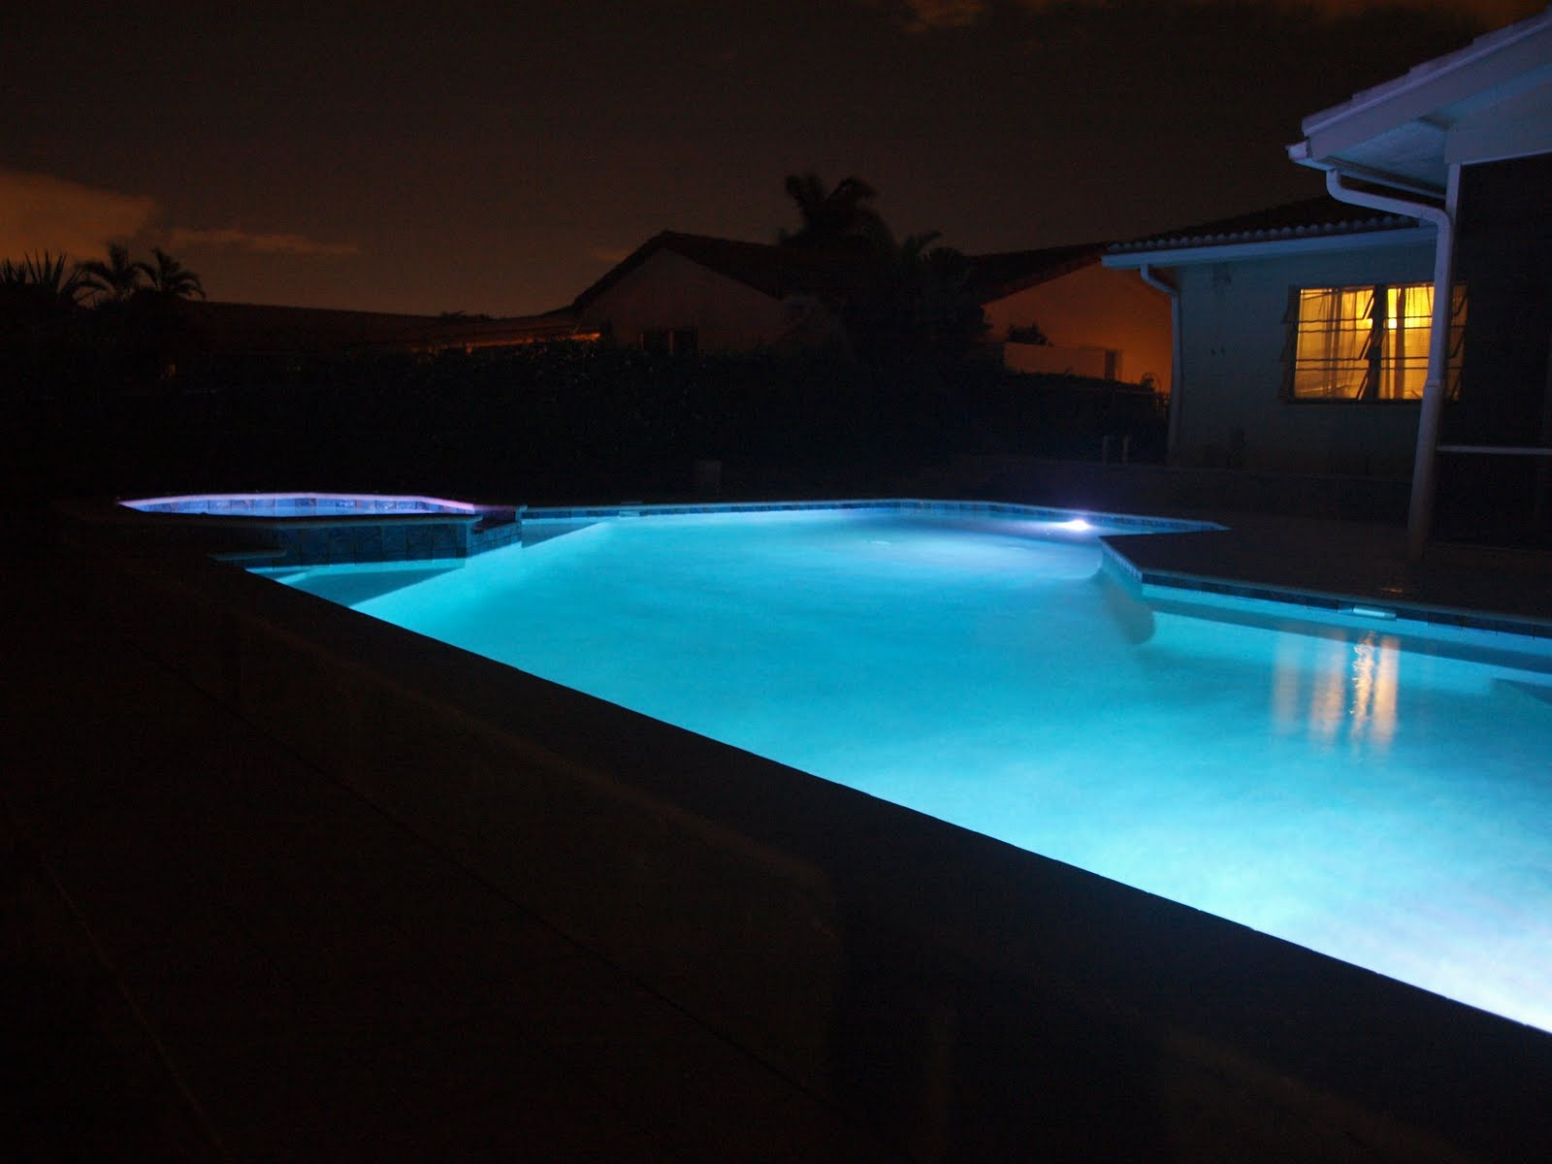 Pool lighting - Ideas and Requests - Enscape Community Forum